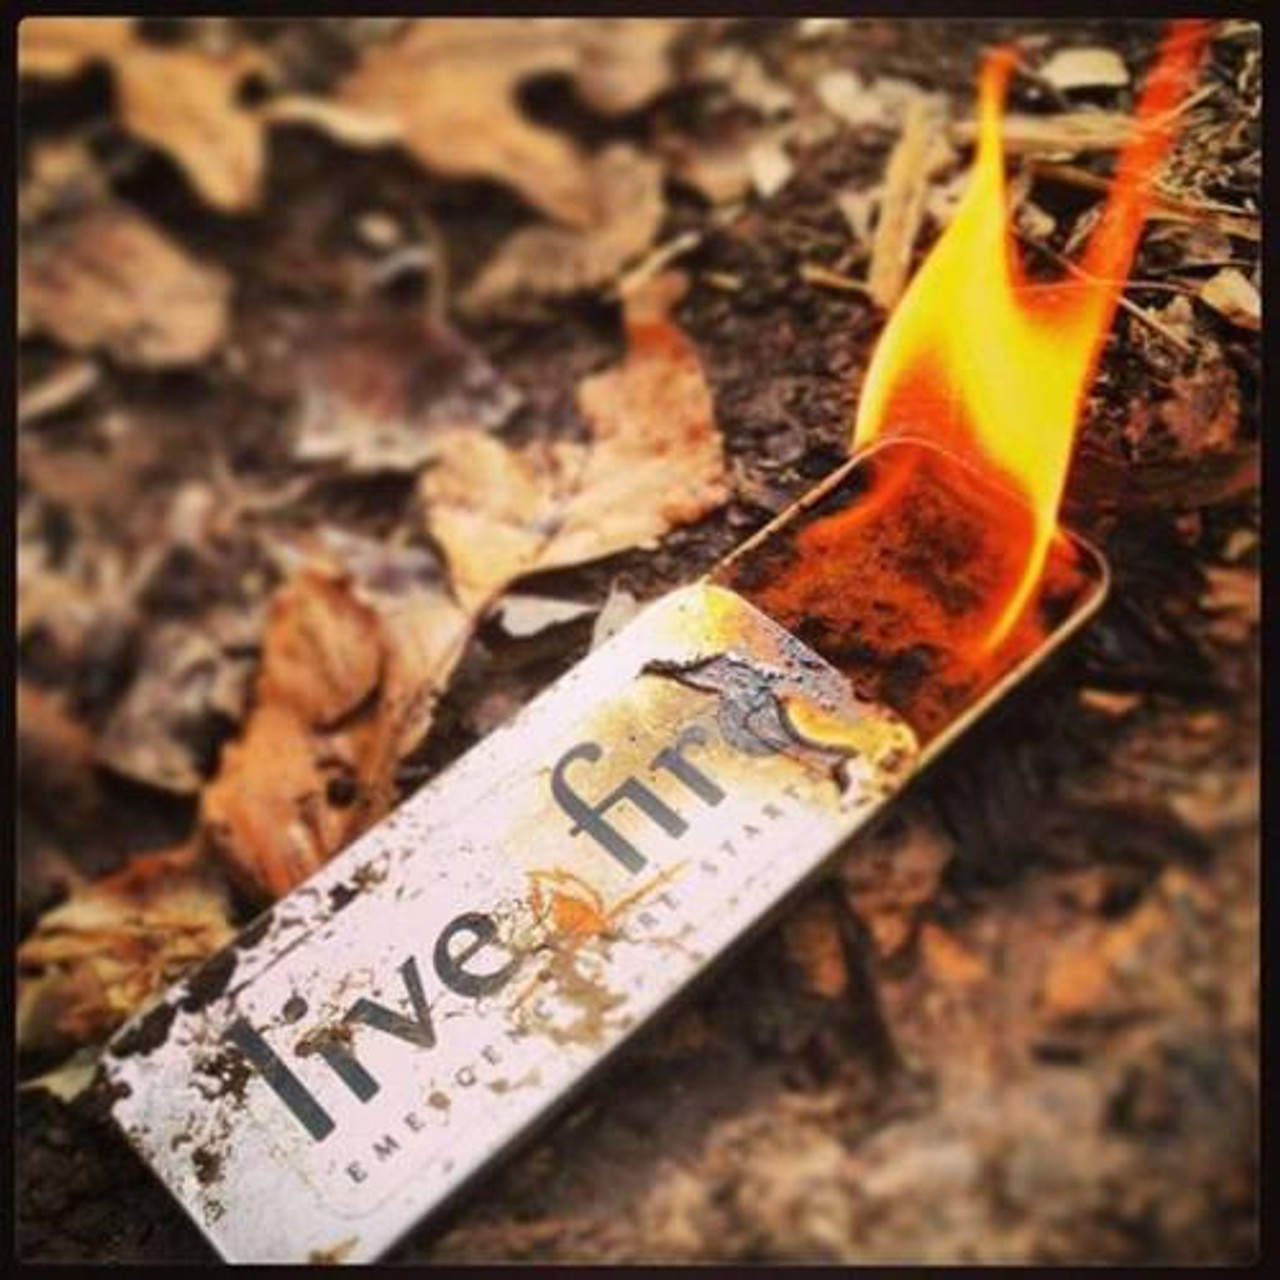 Live Fire Emergency Fire Starter Original Camping Hiking Survival